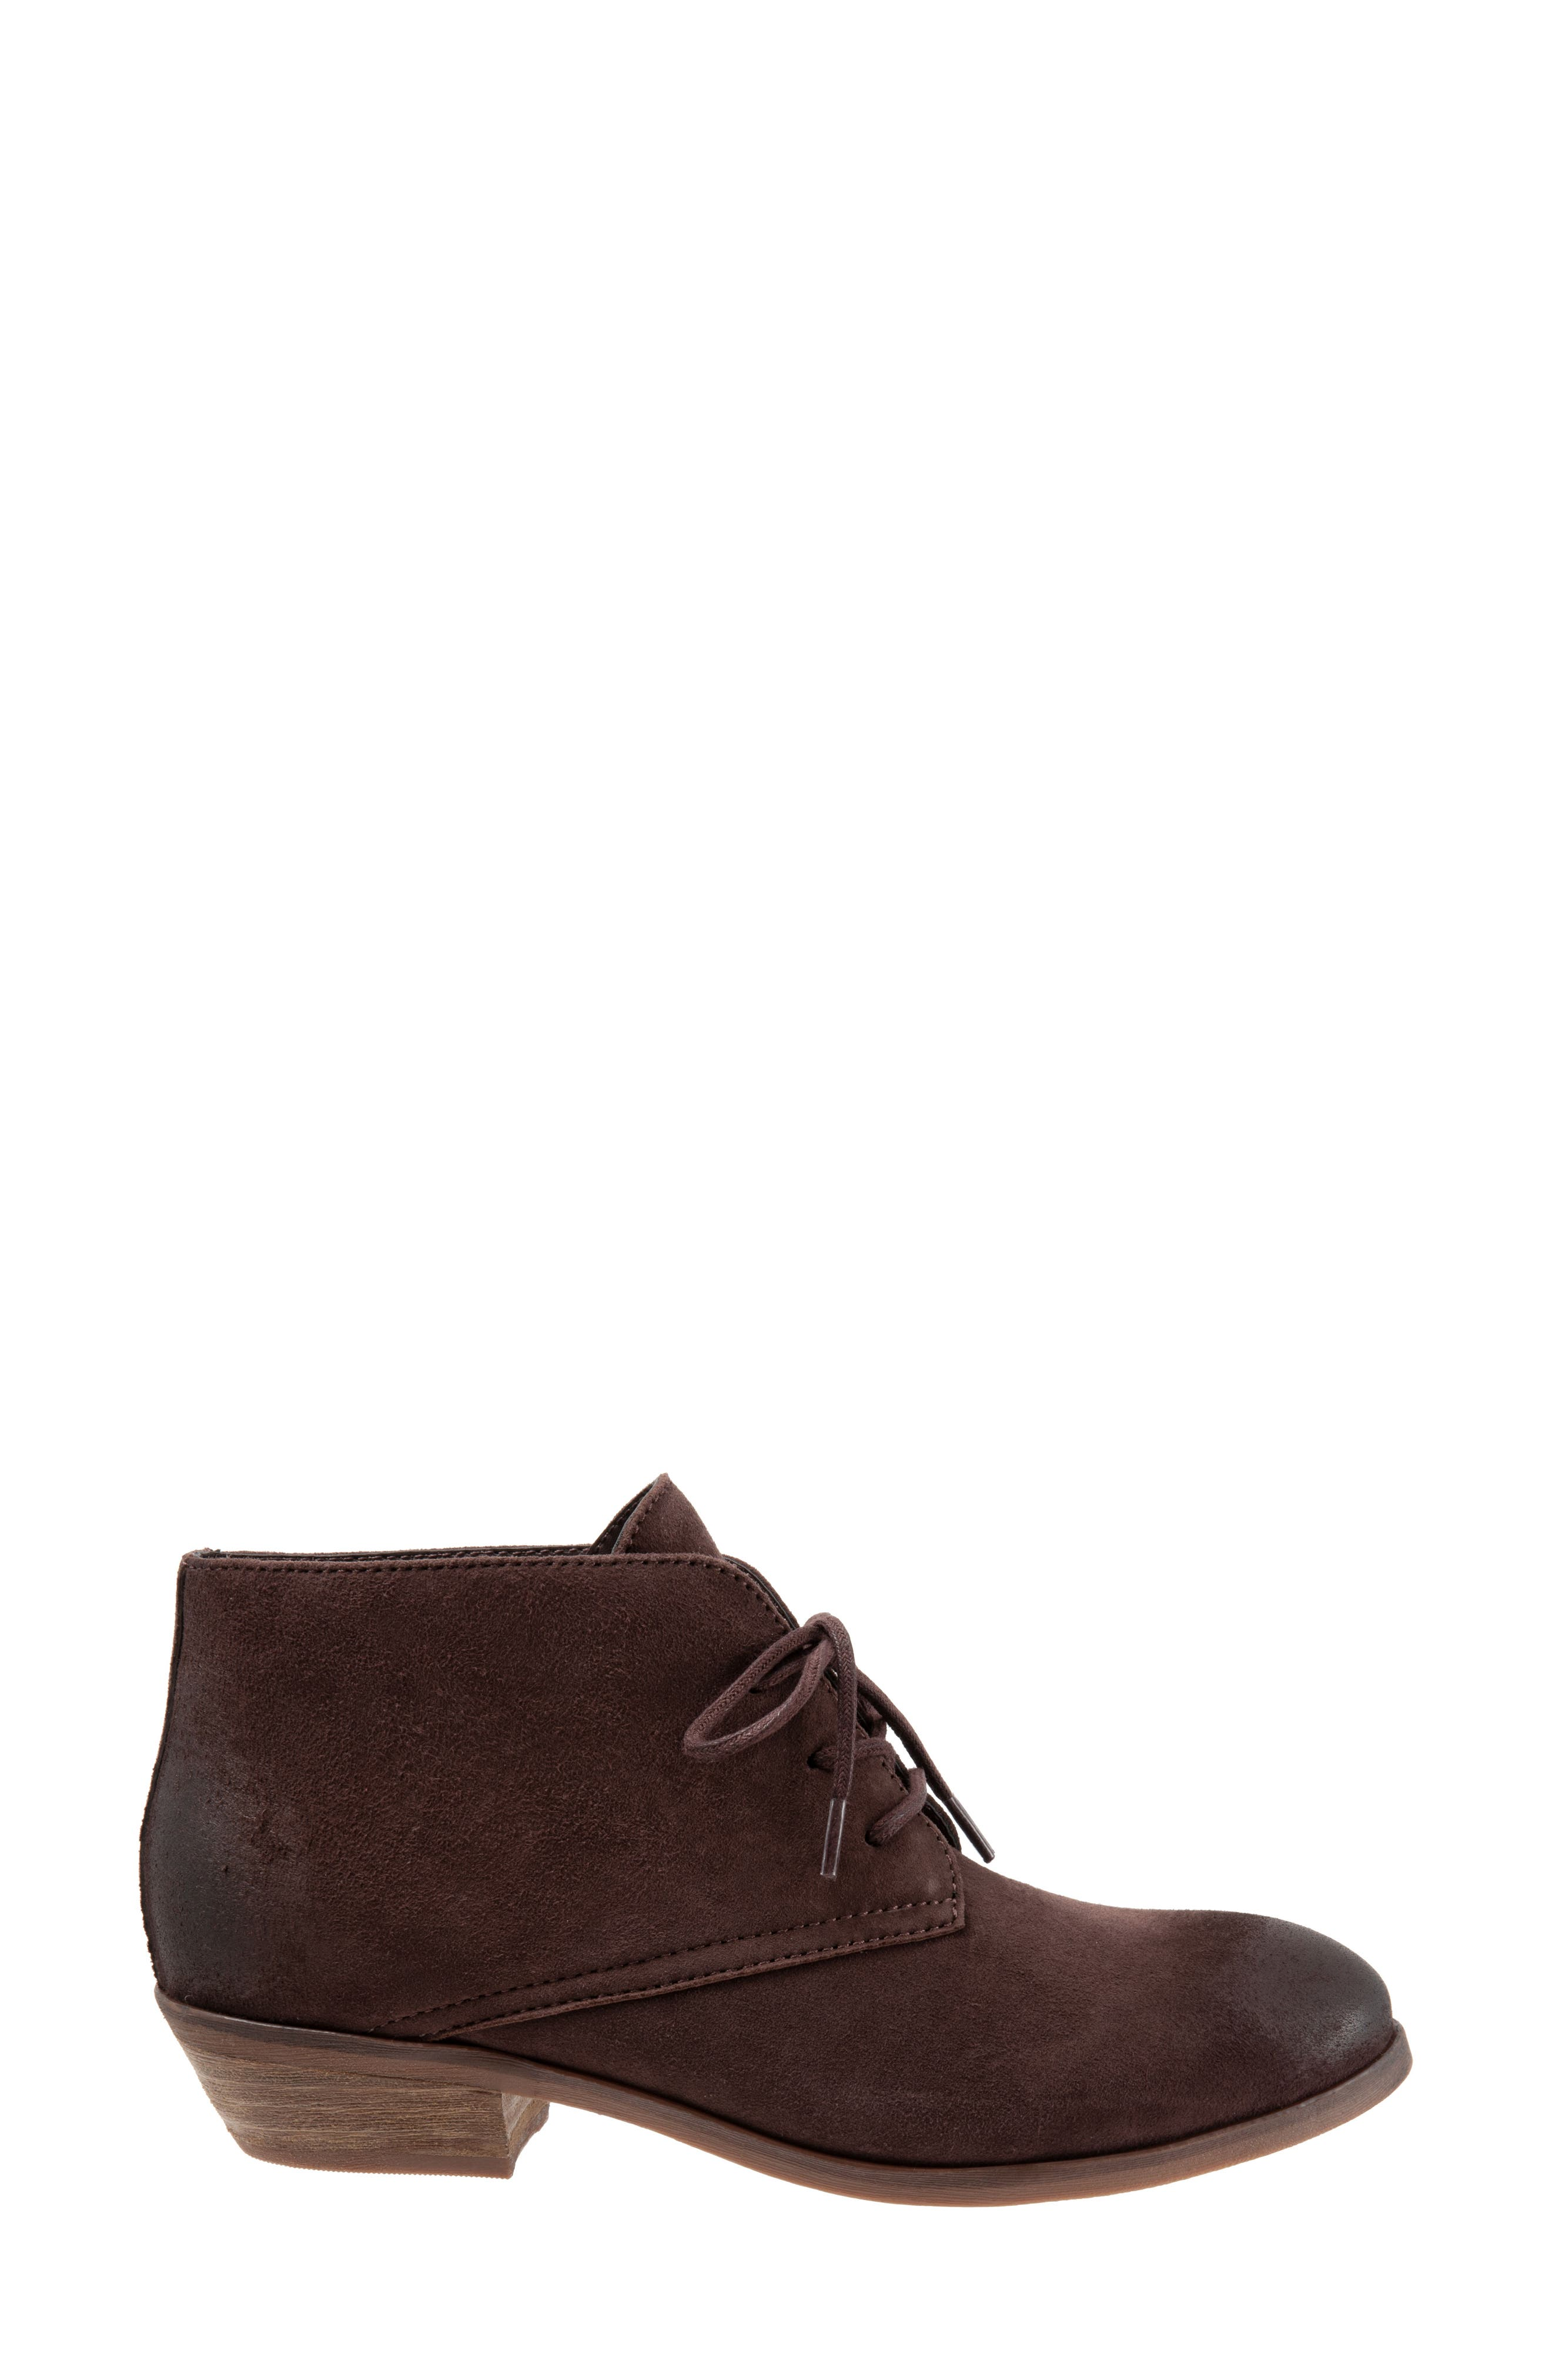 SOFTWALK<SUP>®</SUP>, Ramsey Chukka Boot, Alternate thumbnail 3, color, DARK BROWN LEATHER